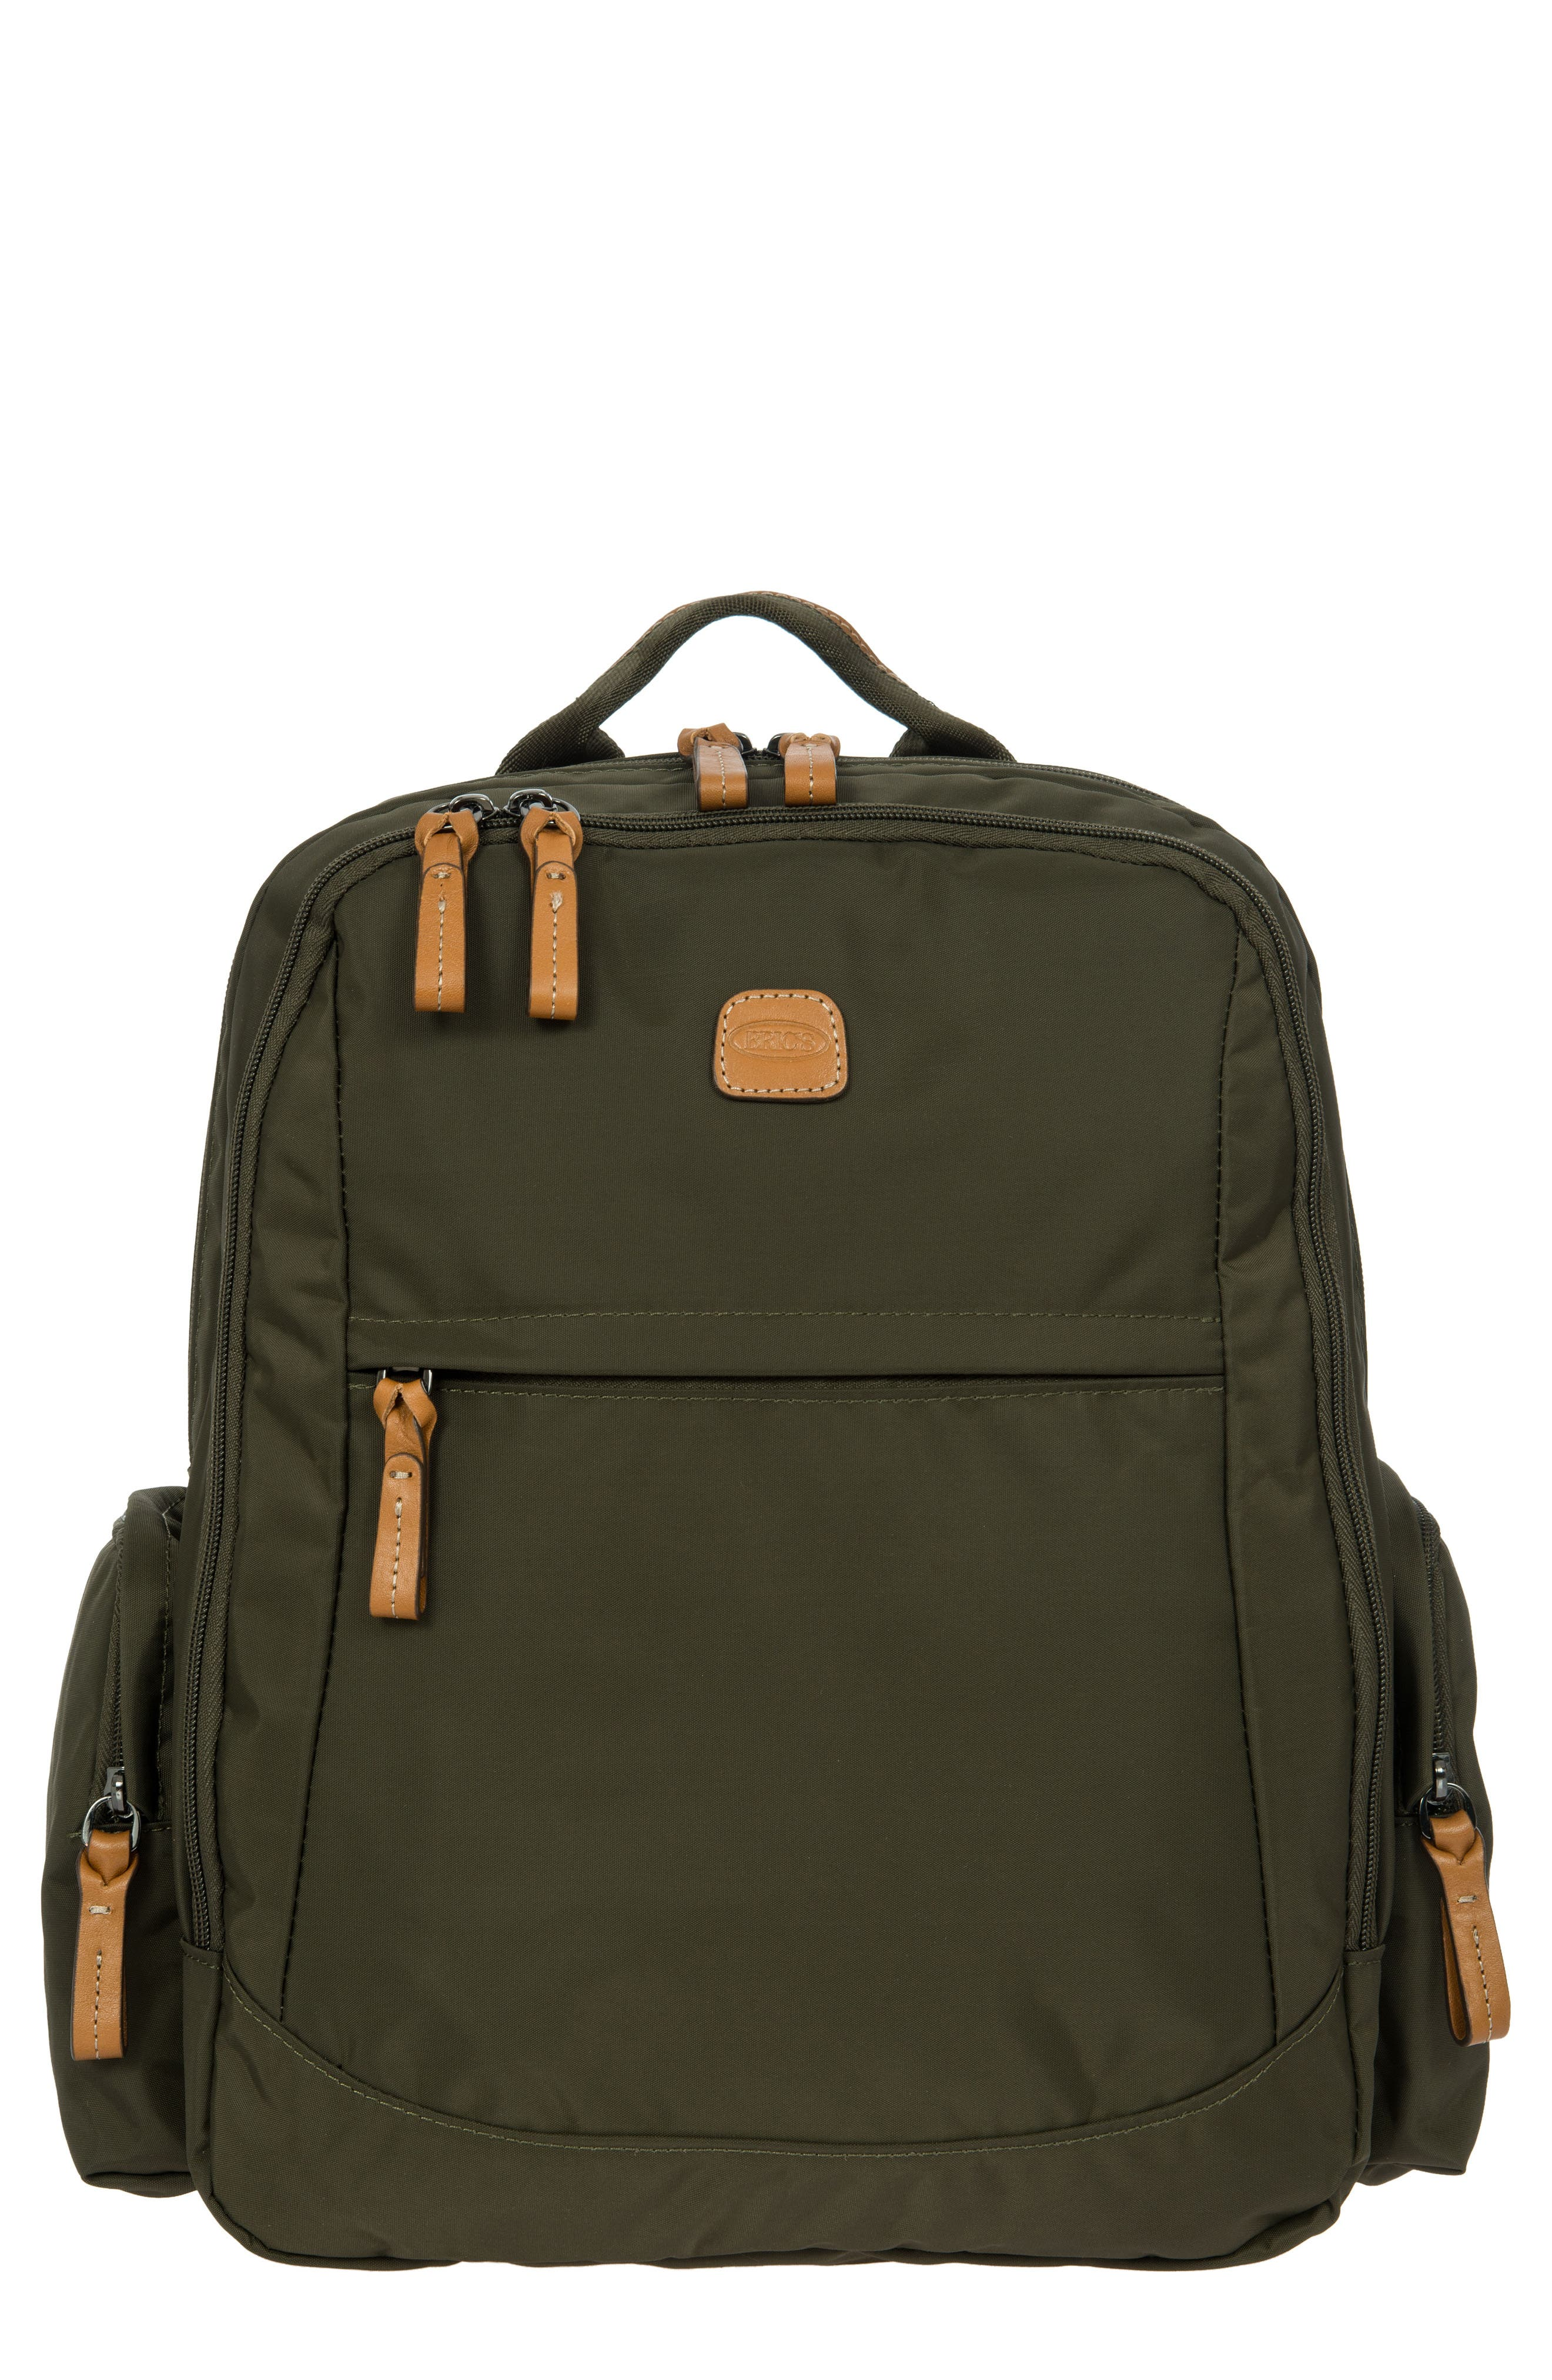 X-Travel Nomad Backpack,                             Main thumbnail 1, color,                             Olive